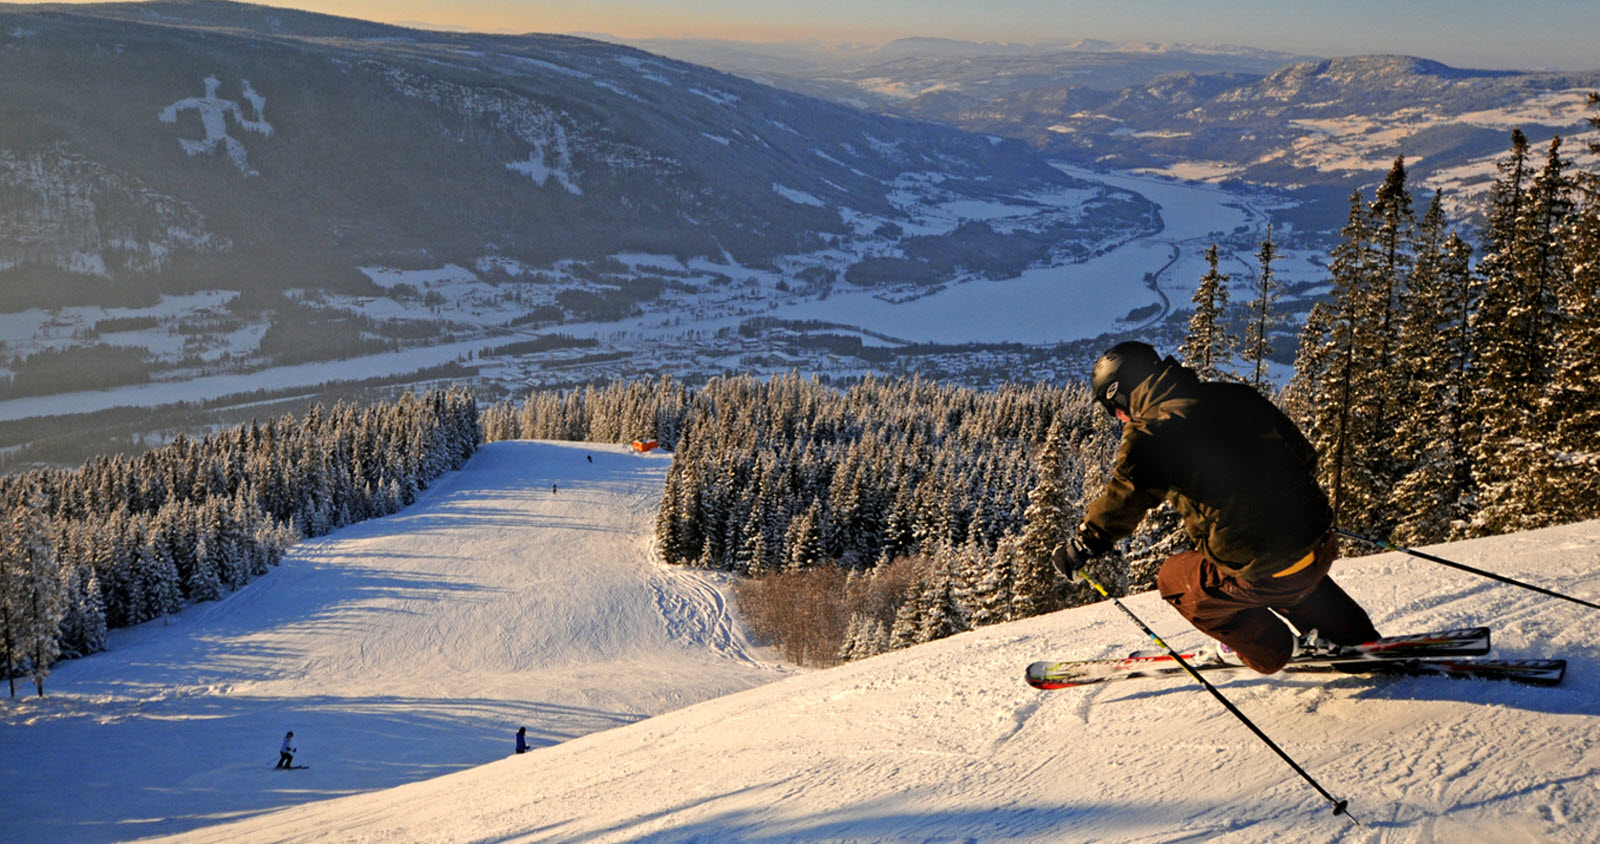 Hafjell Alpine center